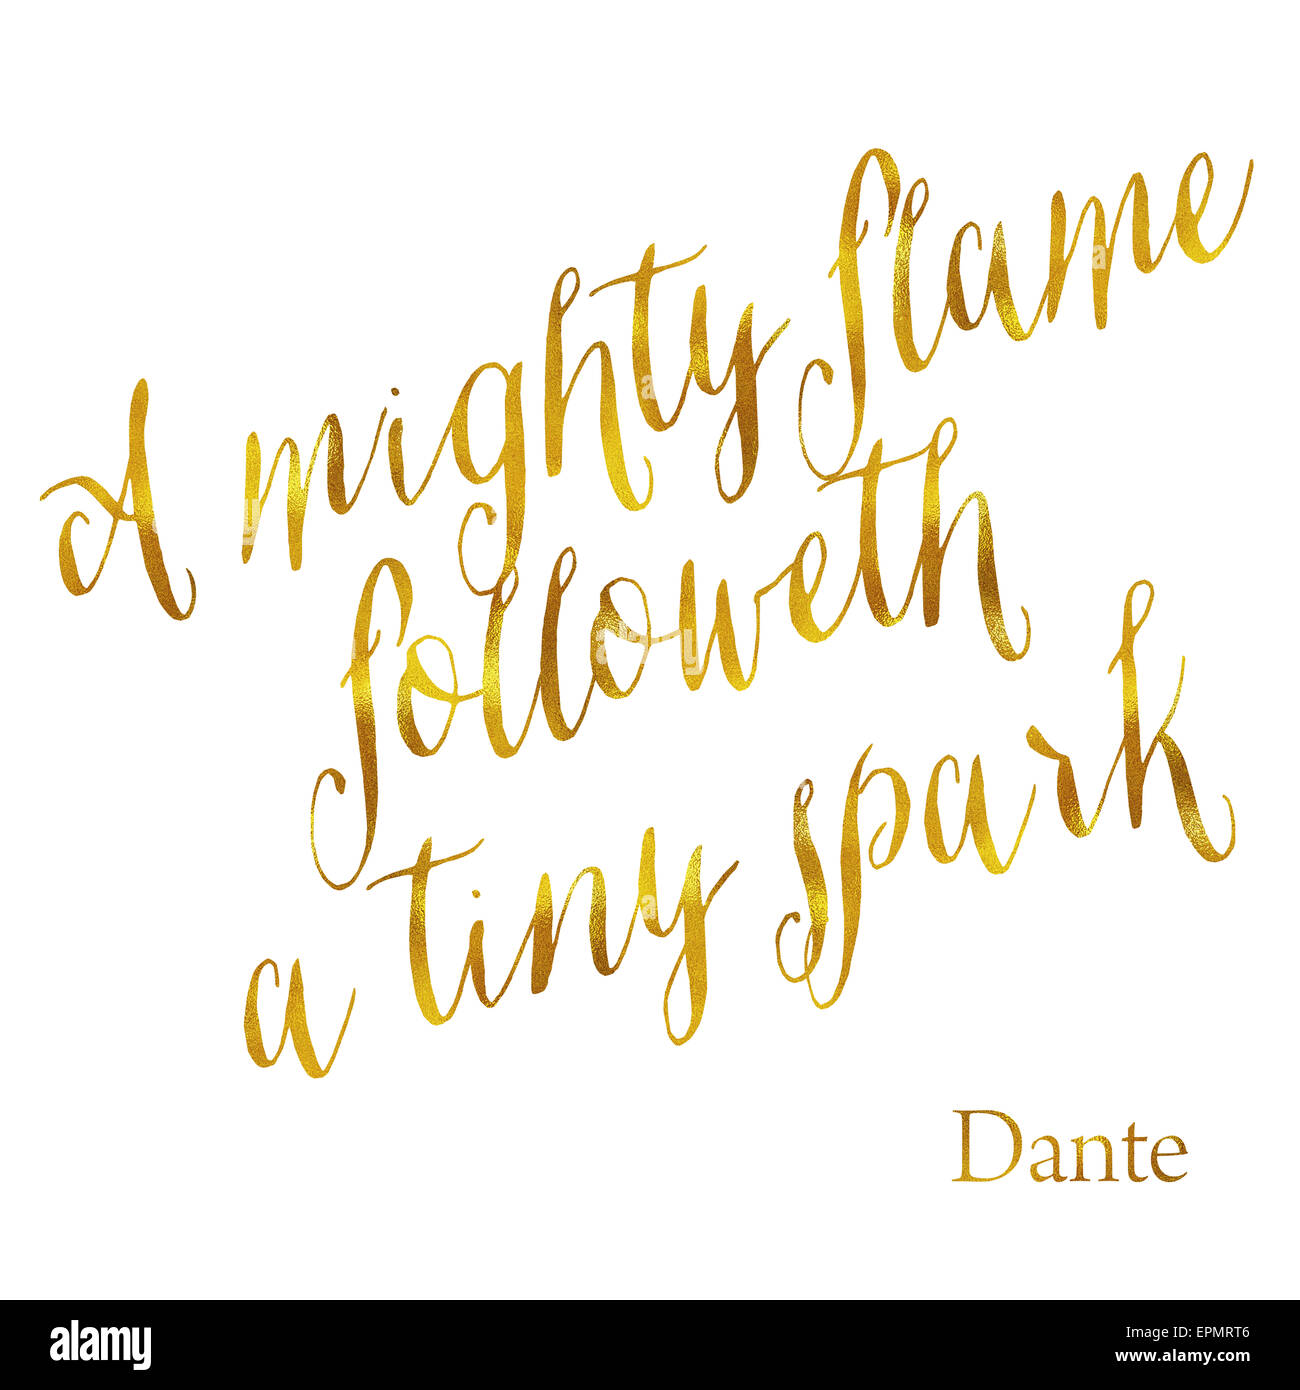 A Mighty Flame Followeth a Tiny Spark Gold Faux Foil Metallic Glitter Quote Isolated on White Background - Stock Image